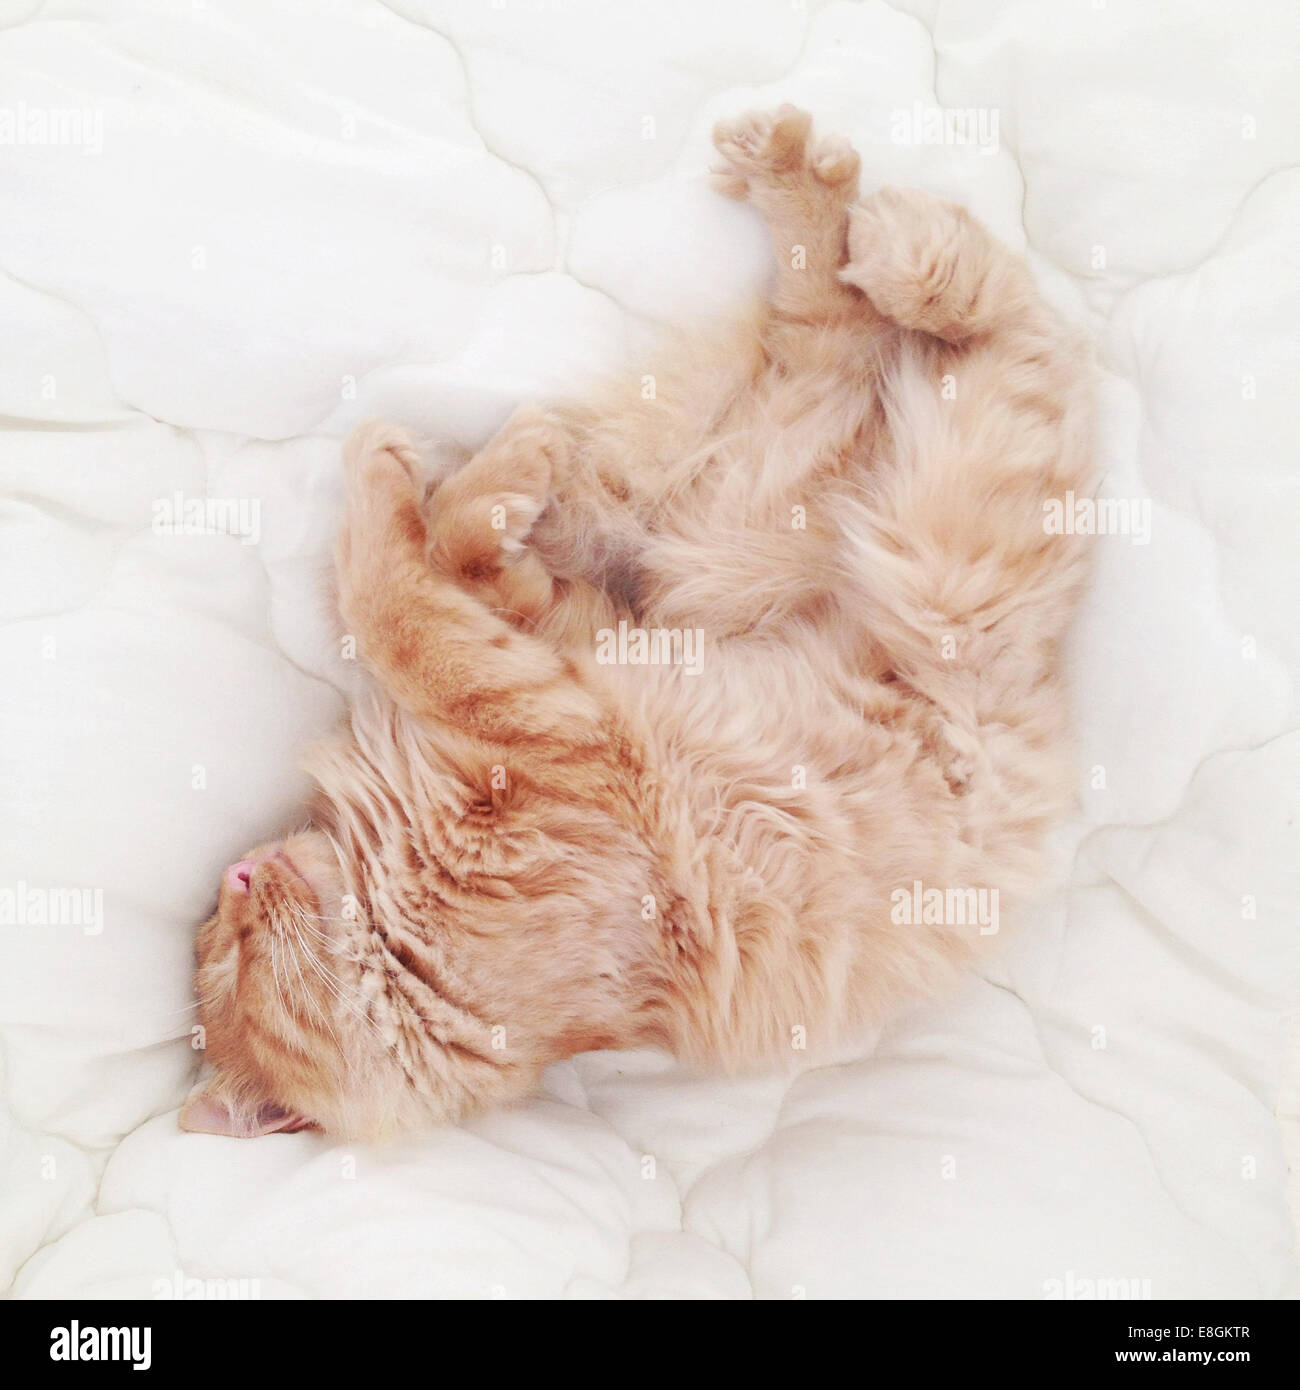 Two ginger cats sleeping on a bed in sunlight - Stock Image